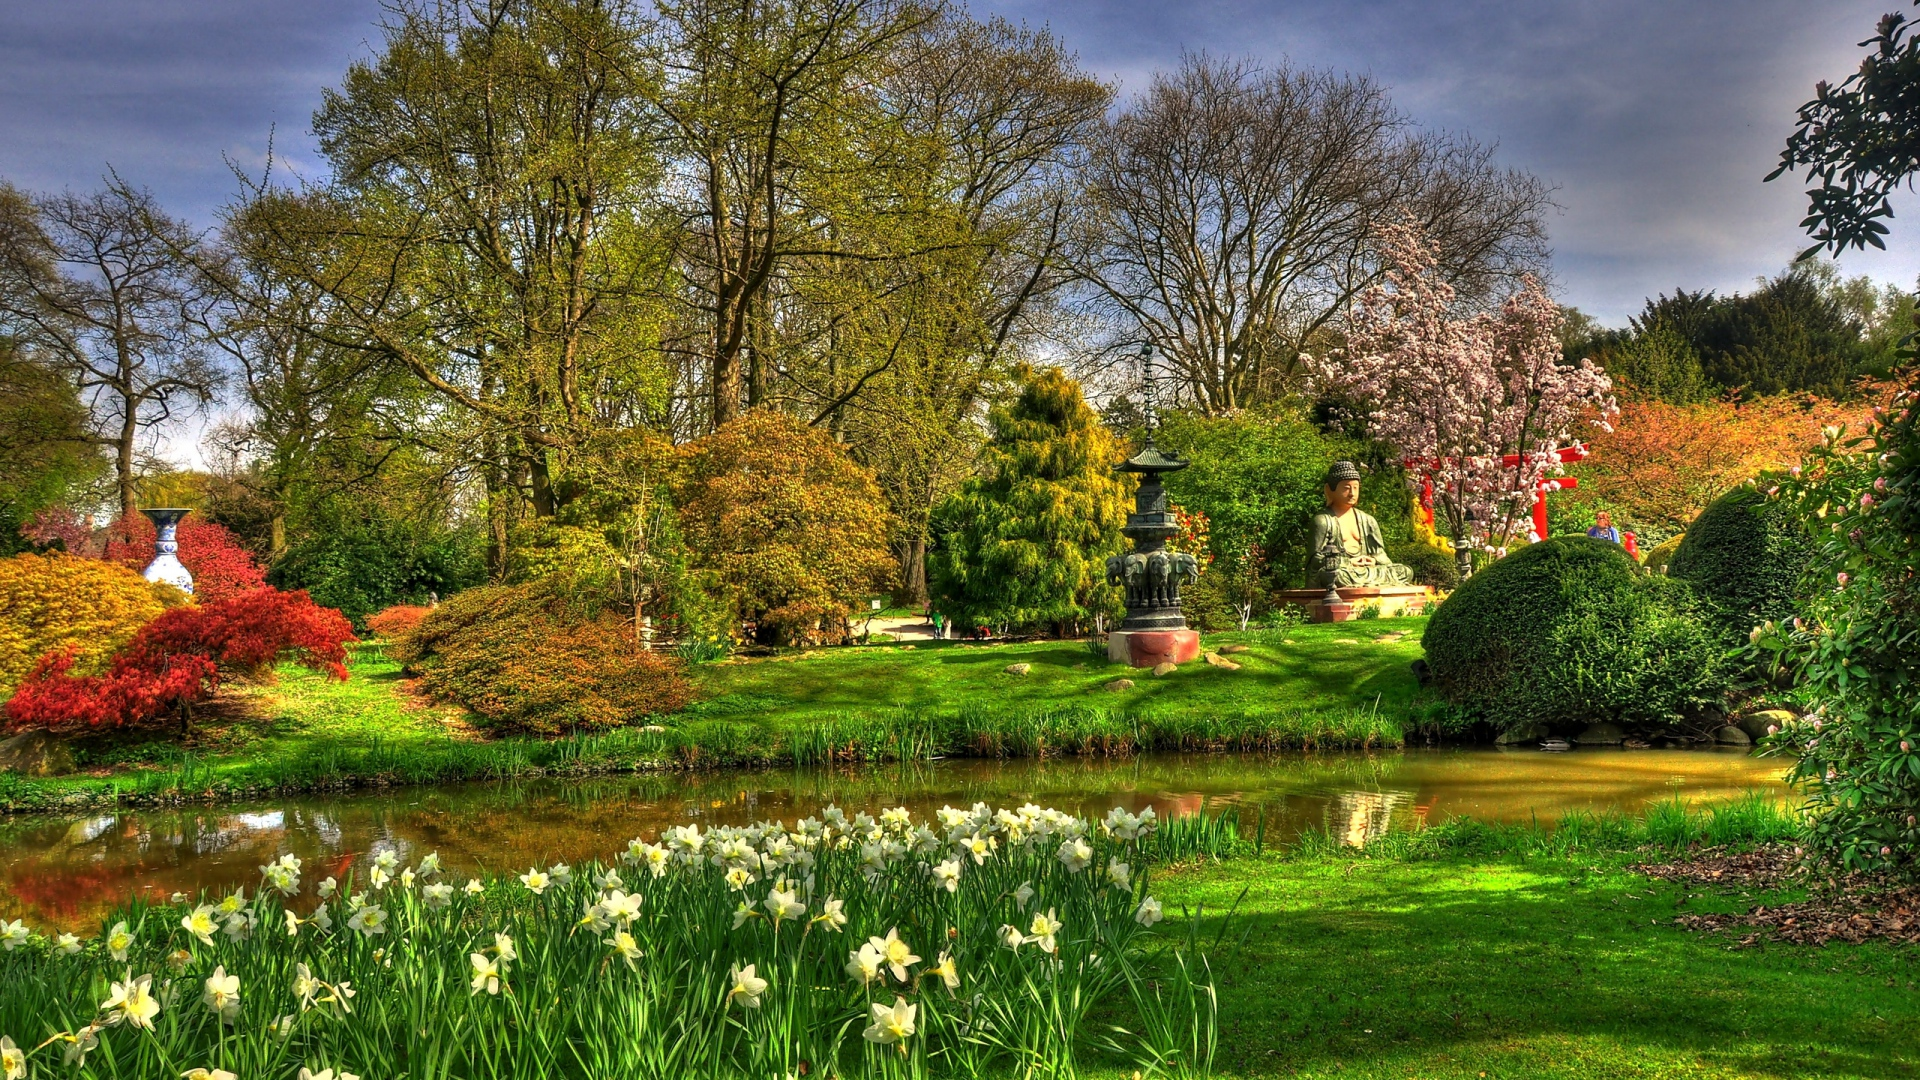 Superior Download Wallpaper 1920x1080 Flowers, Narcissuses, Pond, Garden, Buddha,  Statues Full HD 1080p HD Background